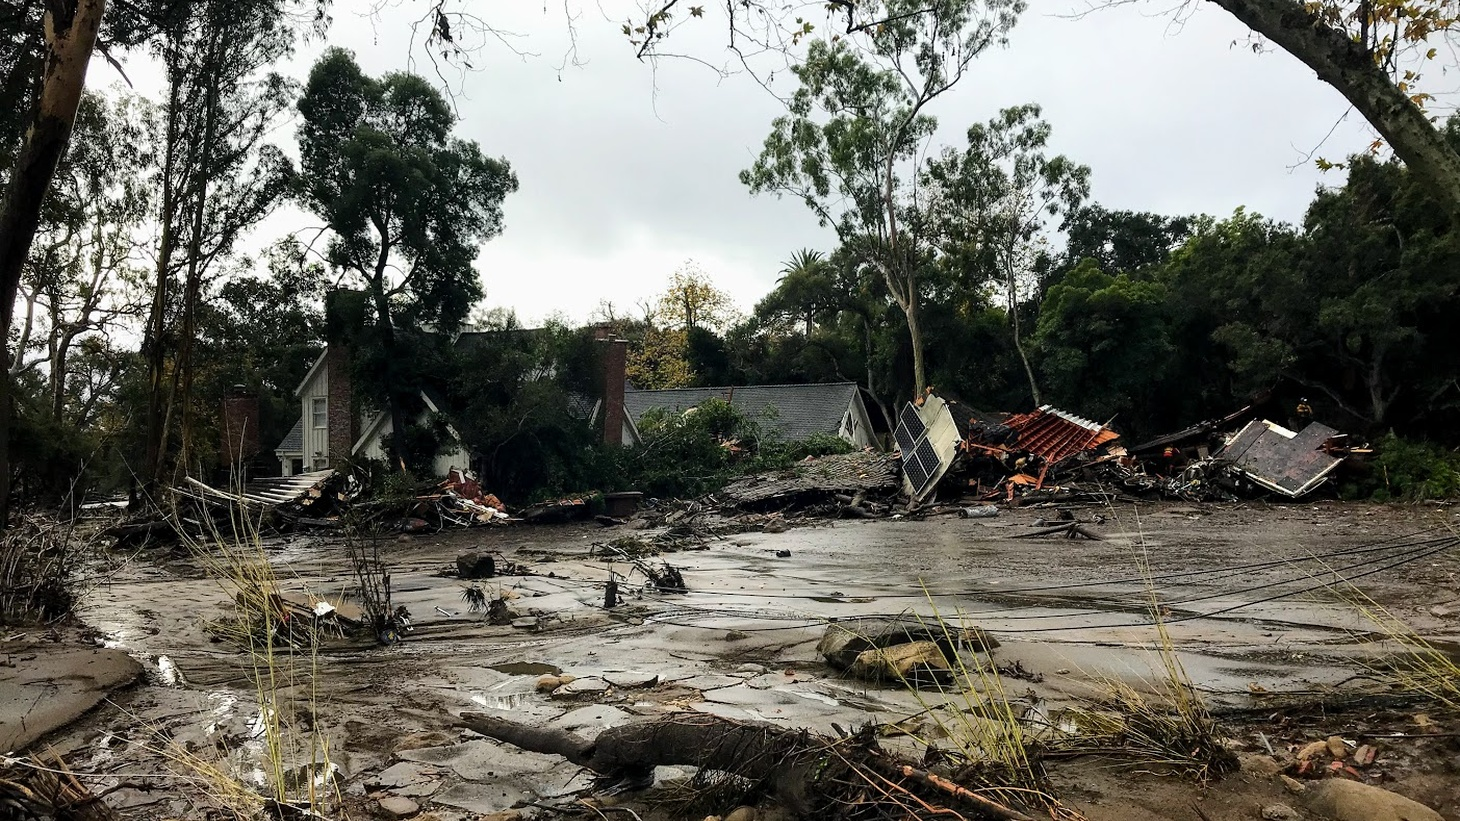 A destroyed home on the morning of the 1/9 Debris Flow in Montecito.